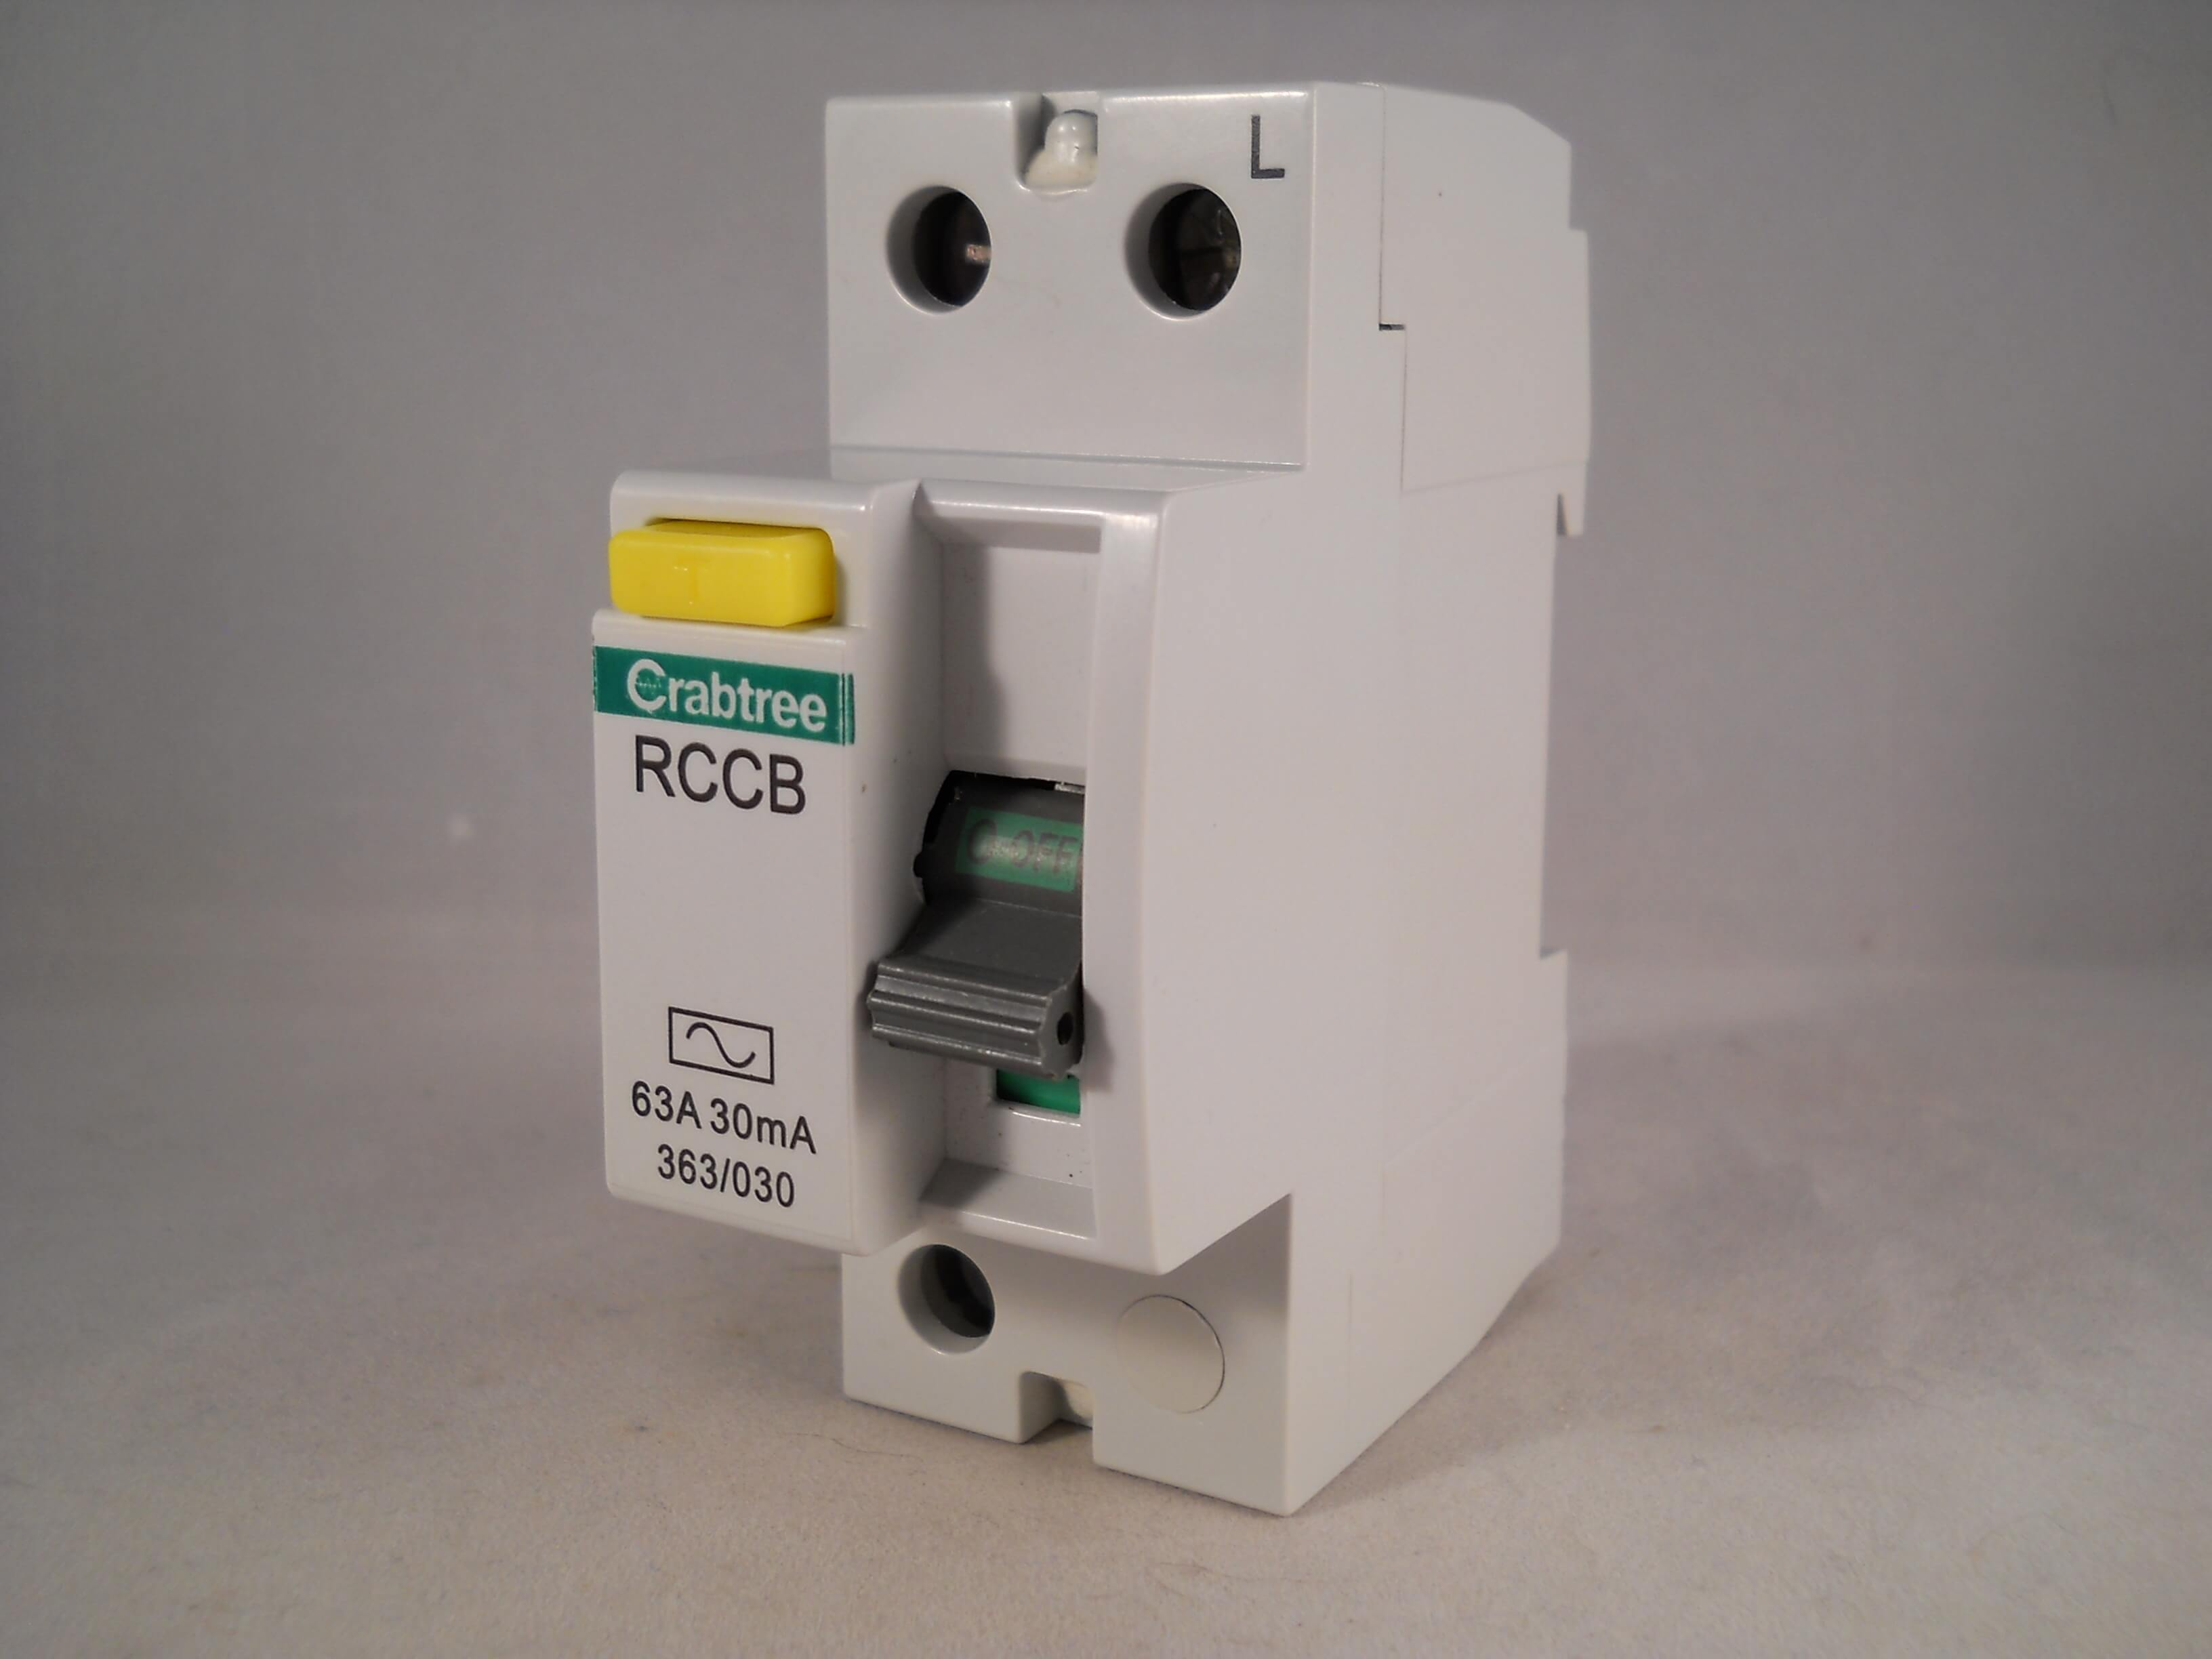 rcbo wiring diagram car battery crabtree starbreaker rccb 63 amp 30ma 2 pole rcd 63a 363